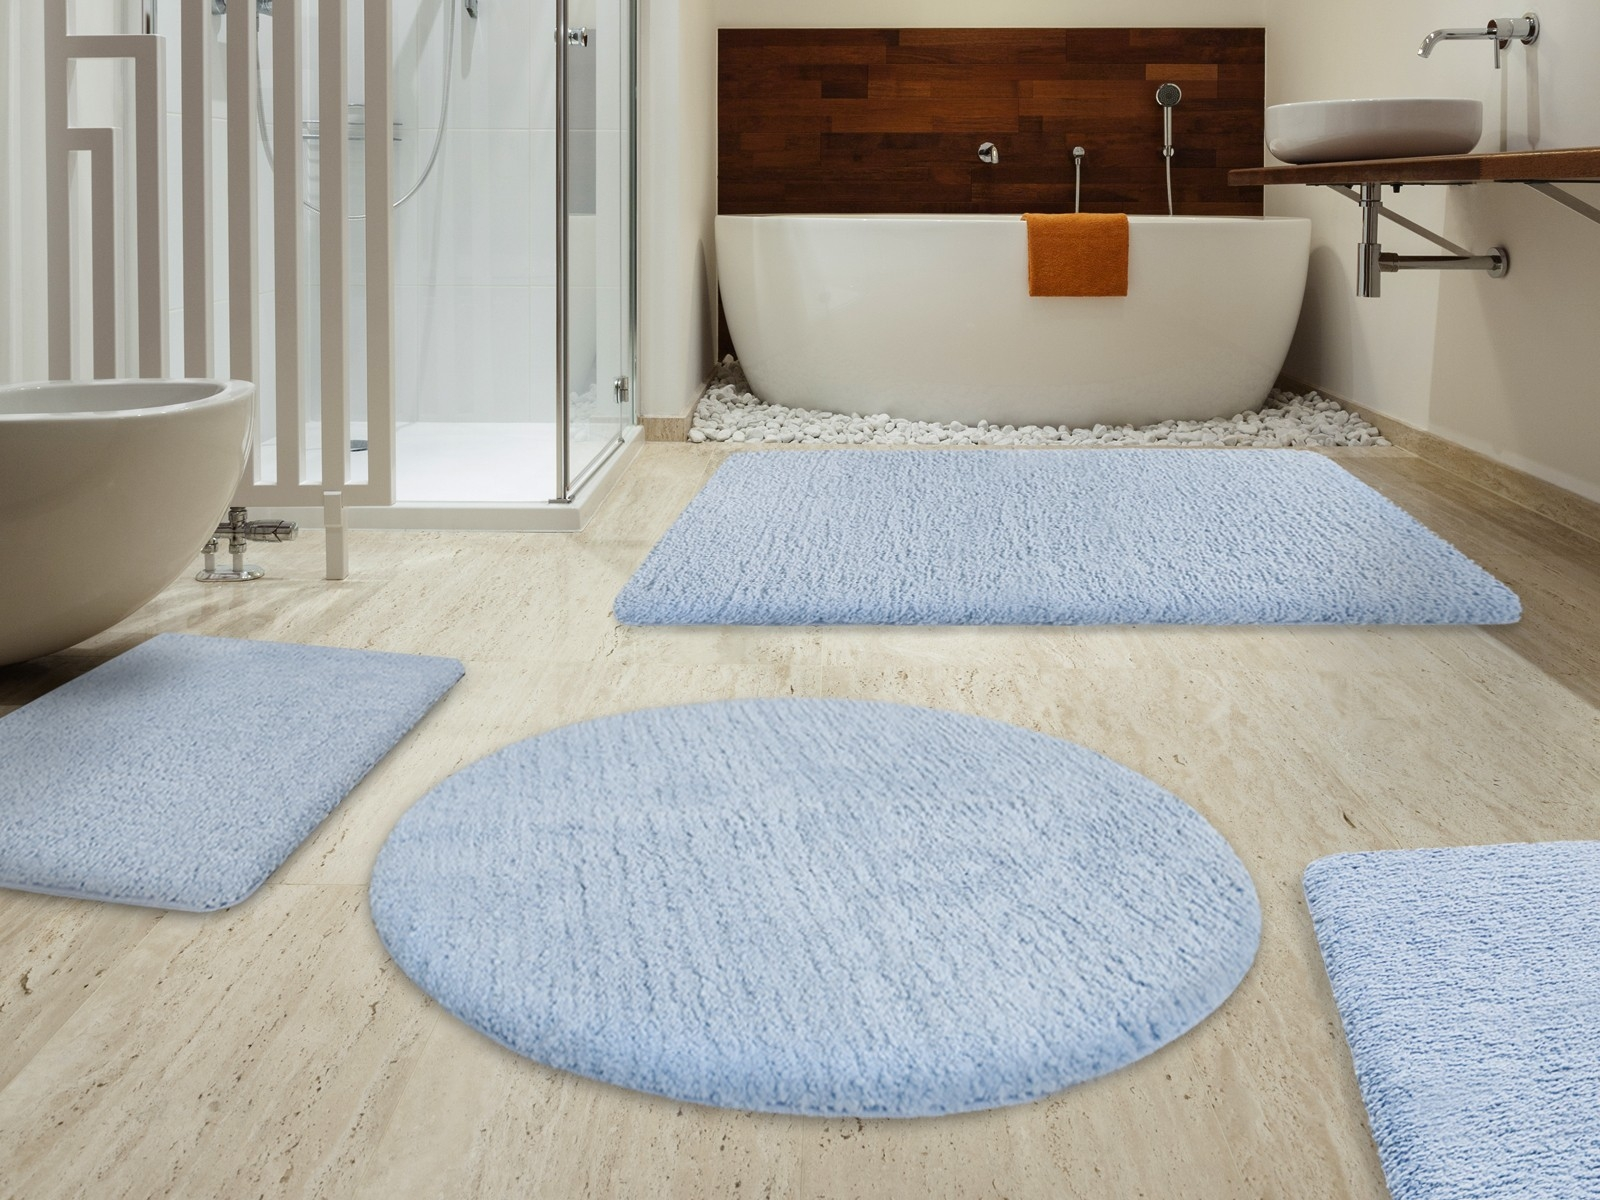 Extra Large Bathroom Rug Sets